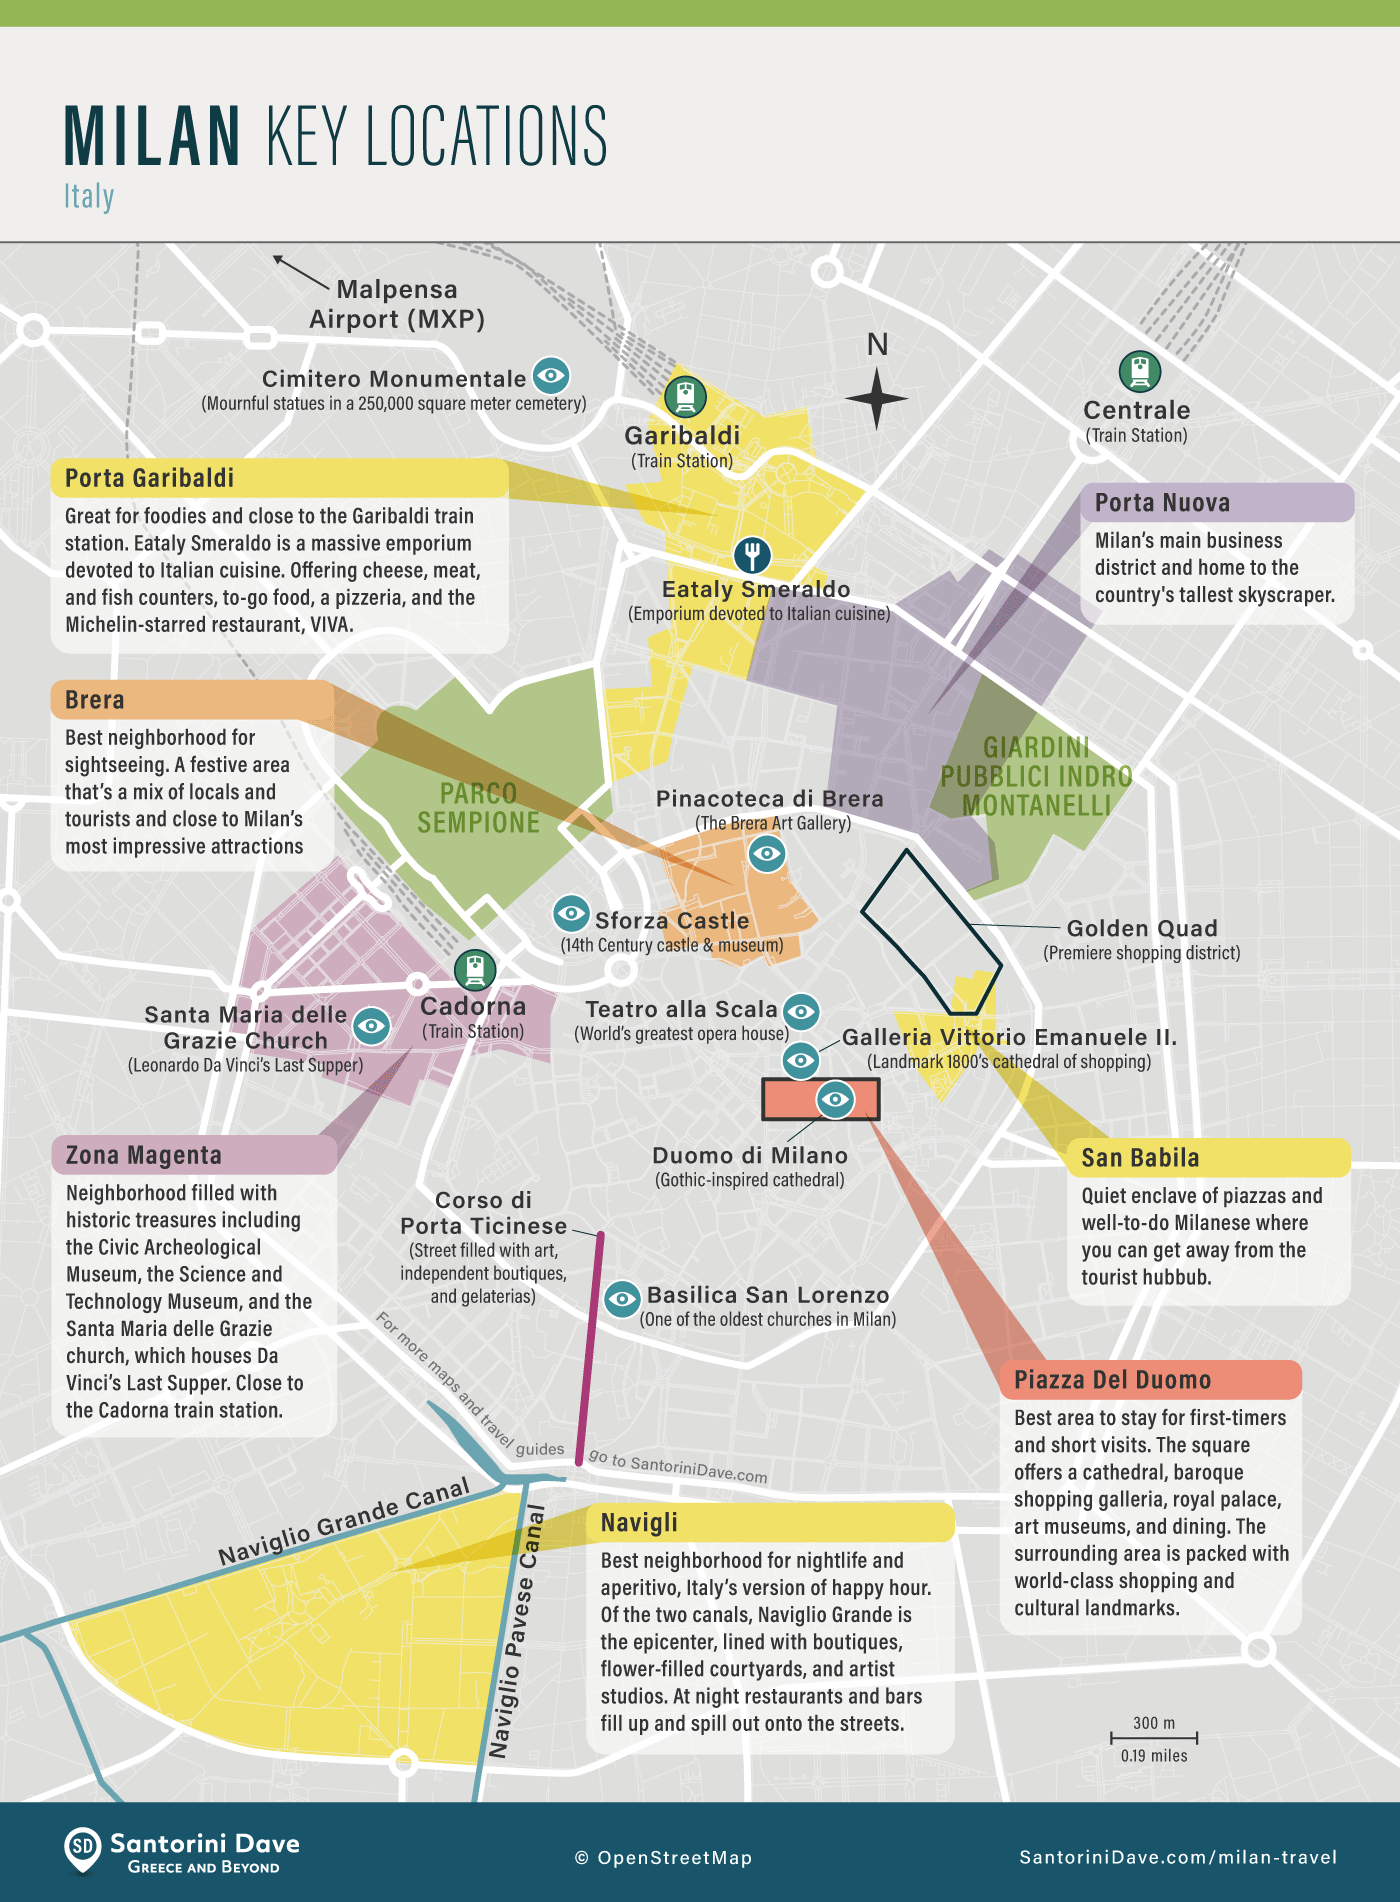 Map of Milan, showing and describing the best areas for tourists.